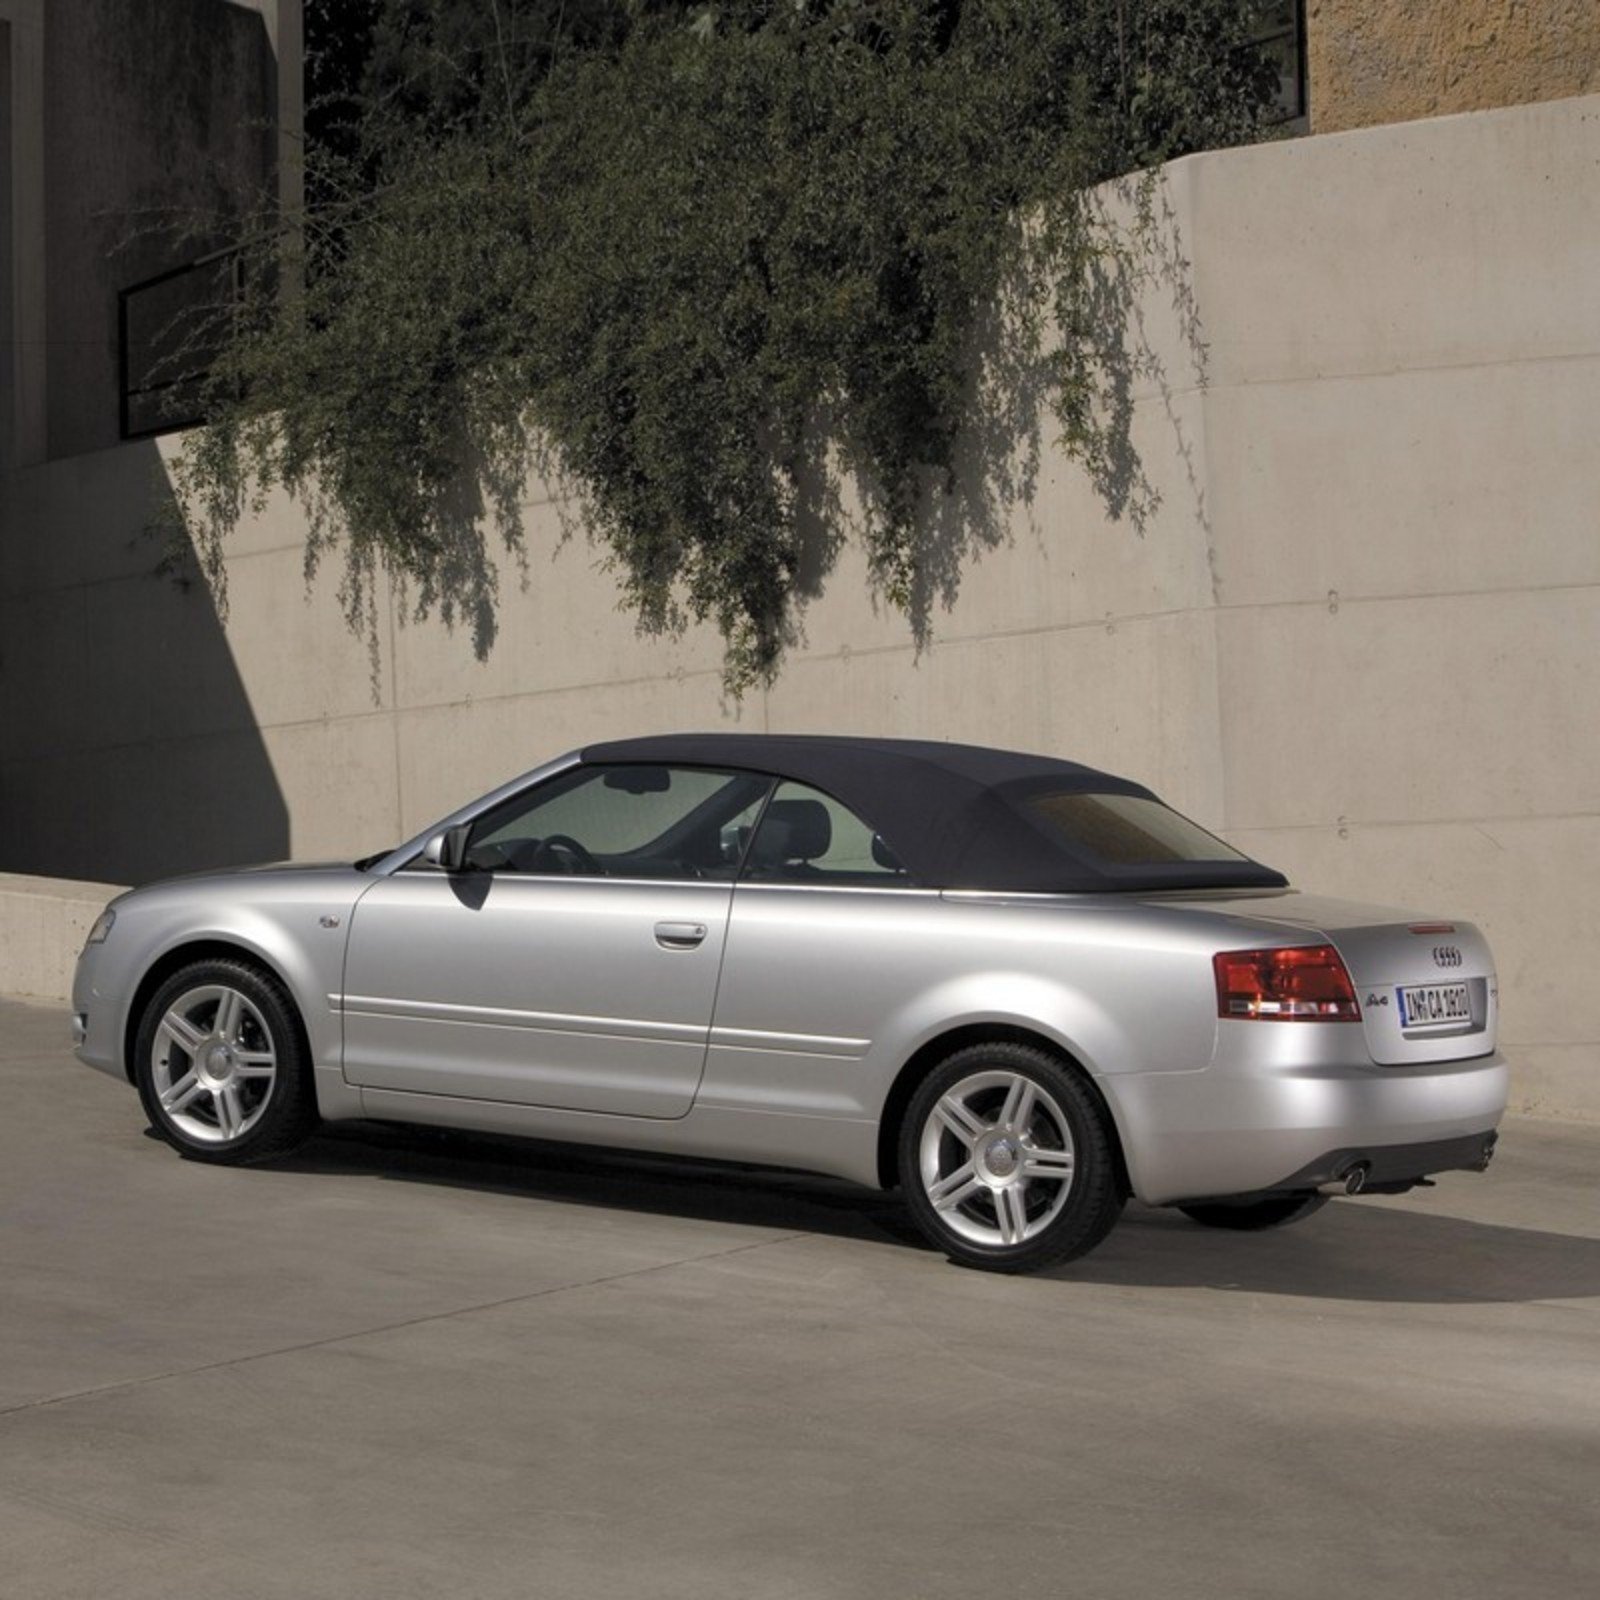 2007 Audi A4 Convertible - Picture 50268